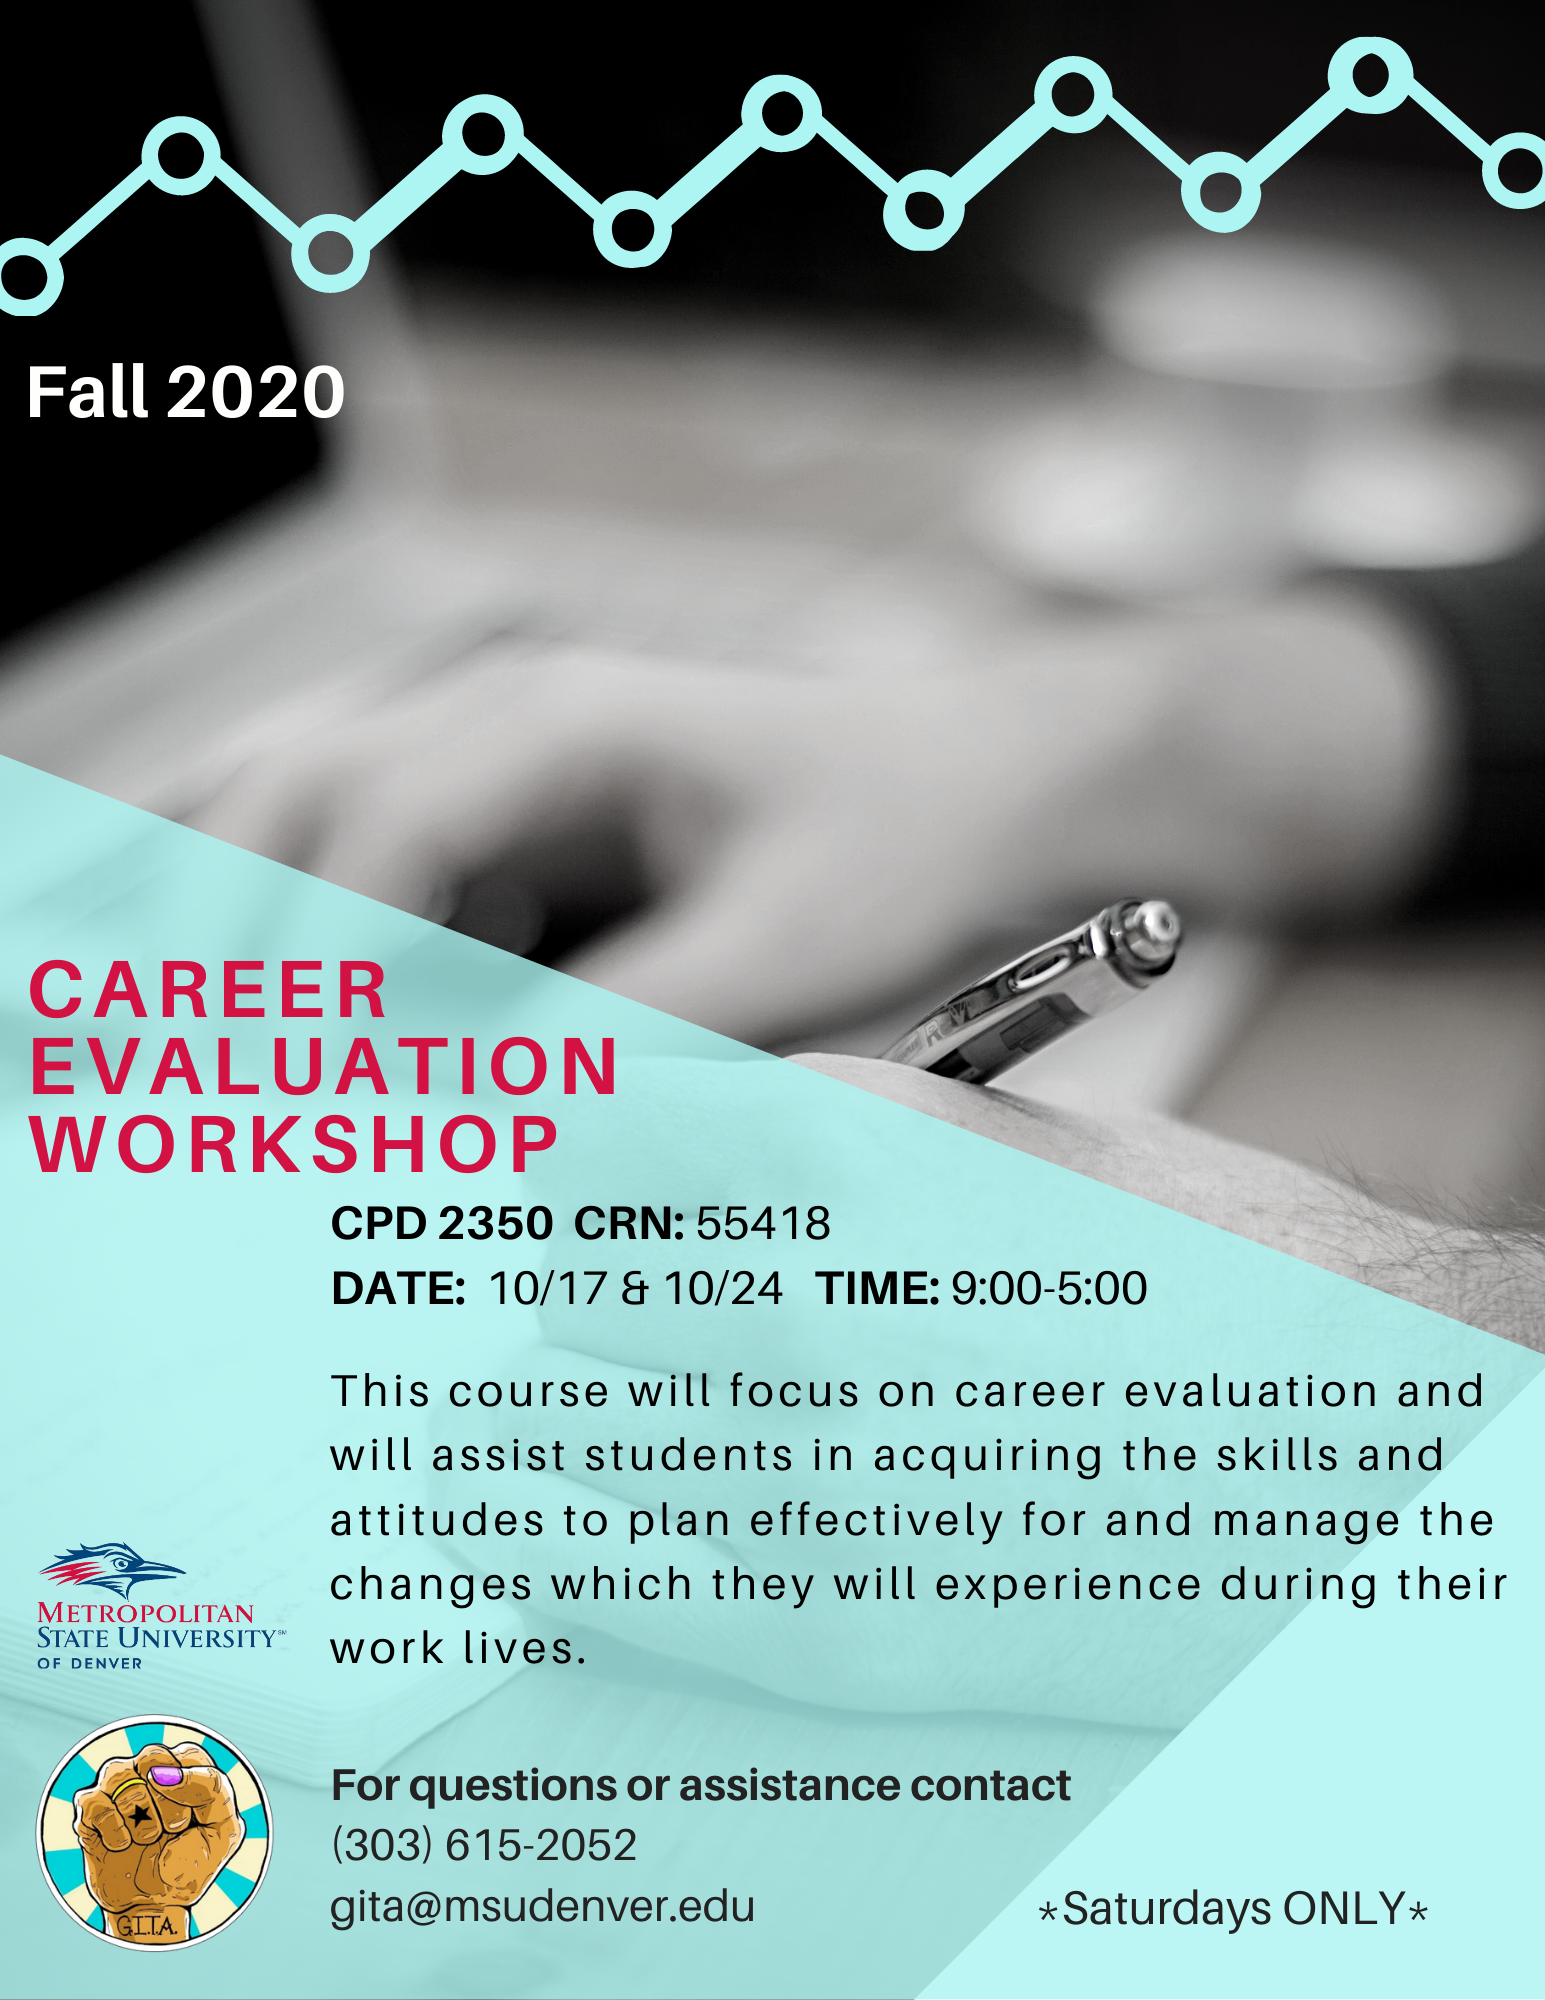 Flyer for CPD 2350 Career Evaluation Workshop Fall 2020 CRN: 55418